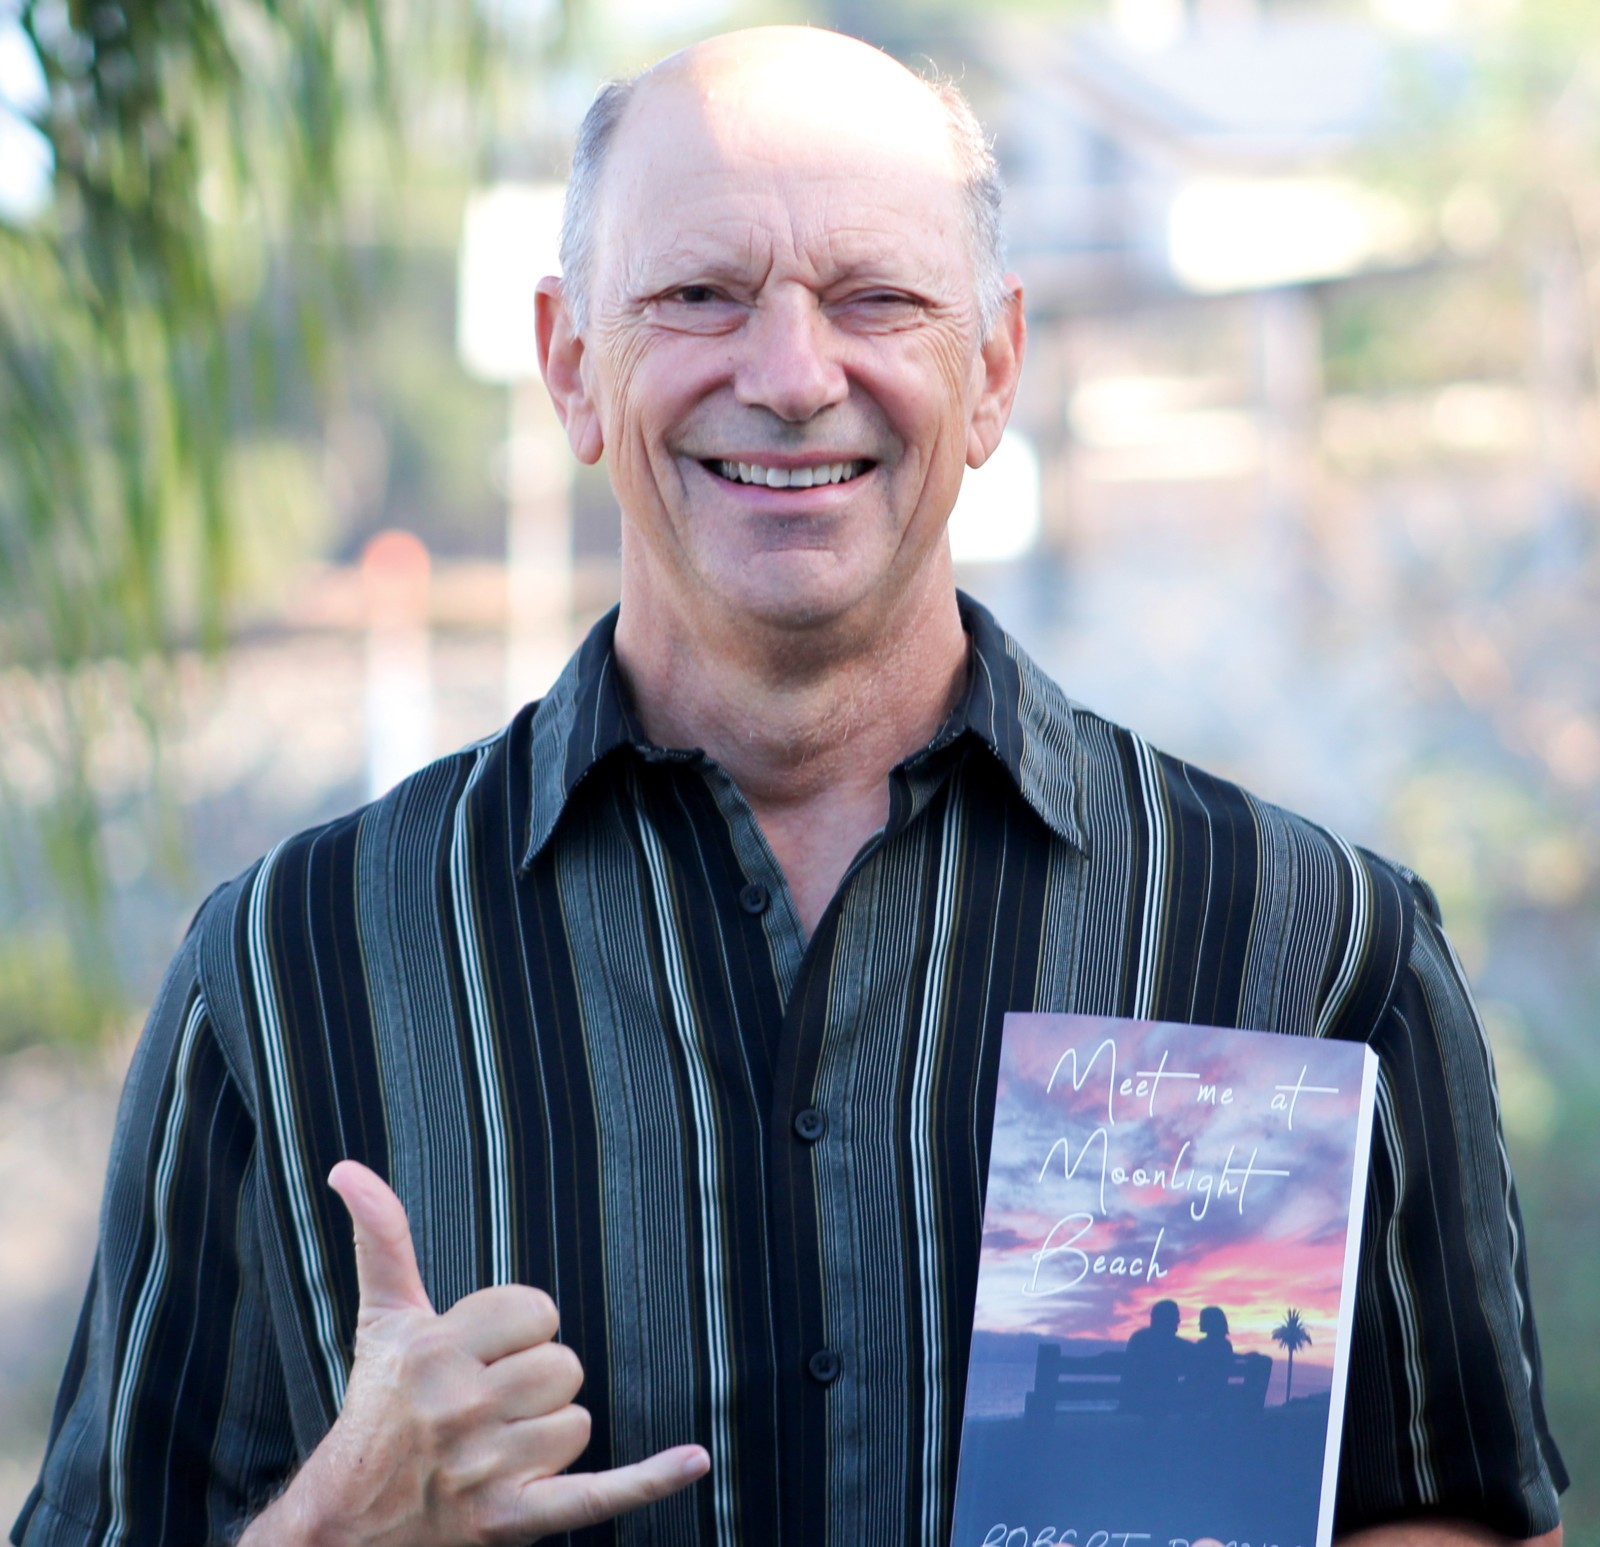 Encinitas author Bob Pacilio captures Moonlight in latest book